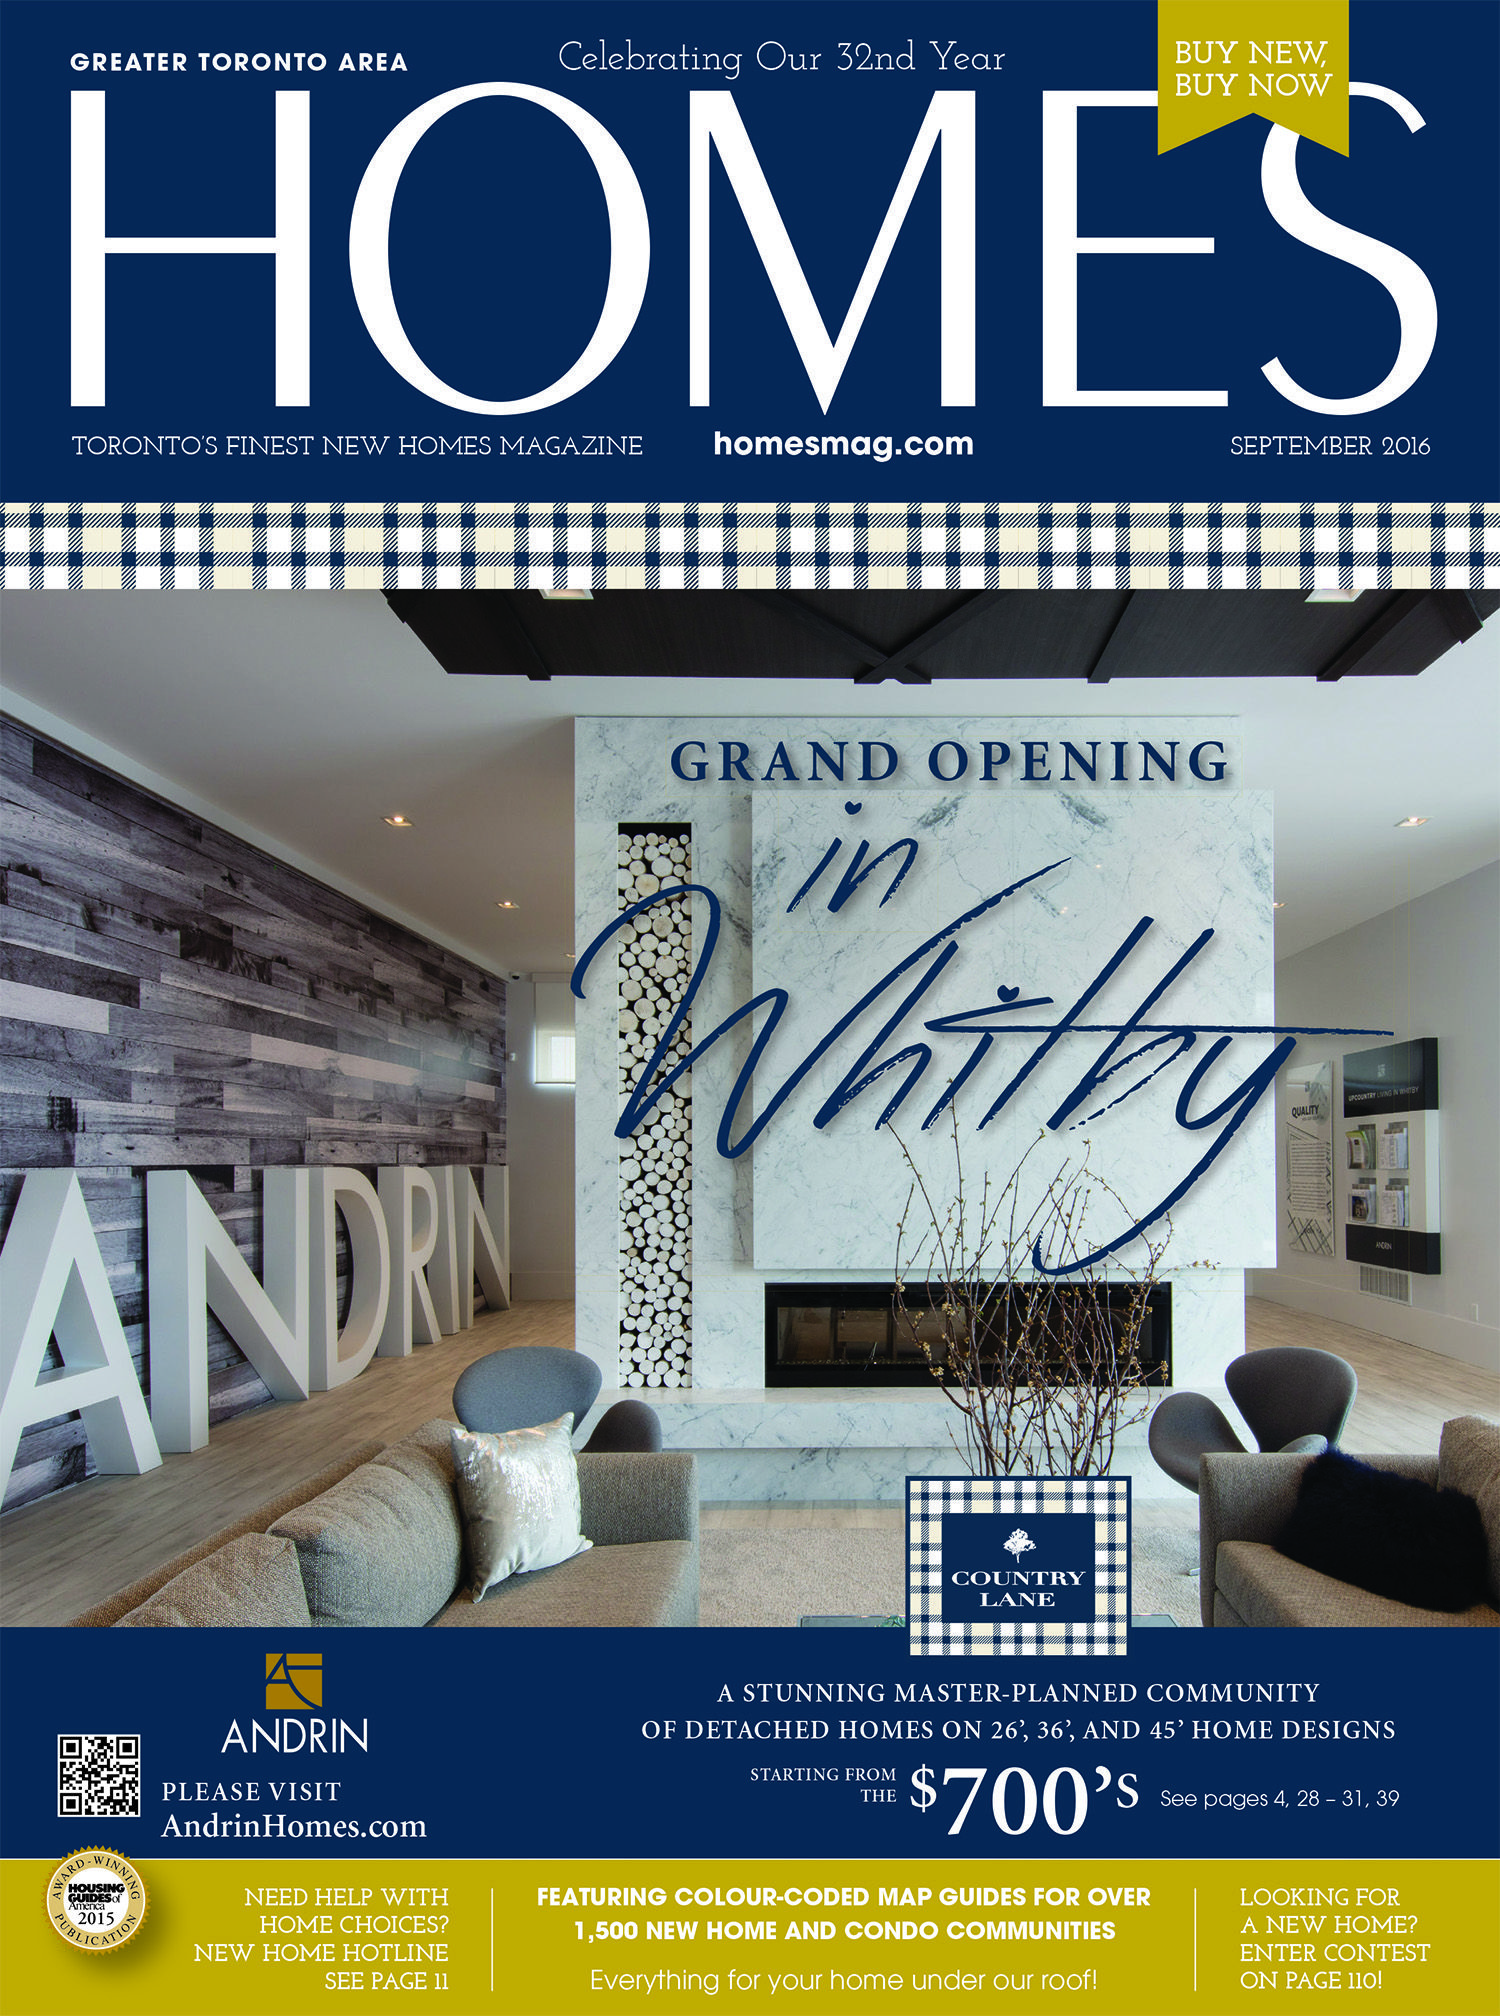 Find Your New Home With Homes Magazine Your Free Home Finder Guide Online